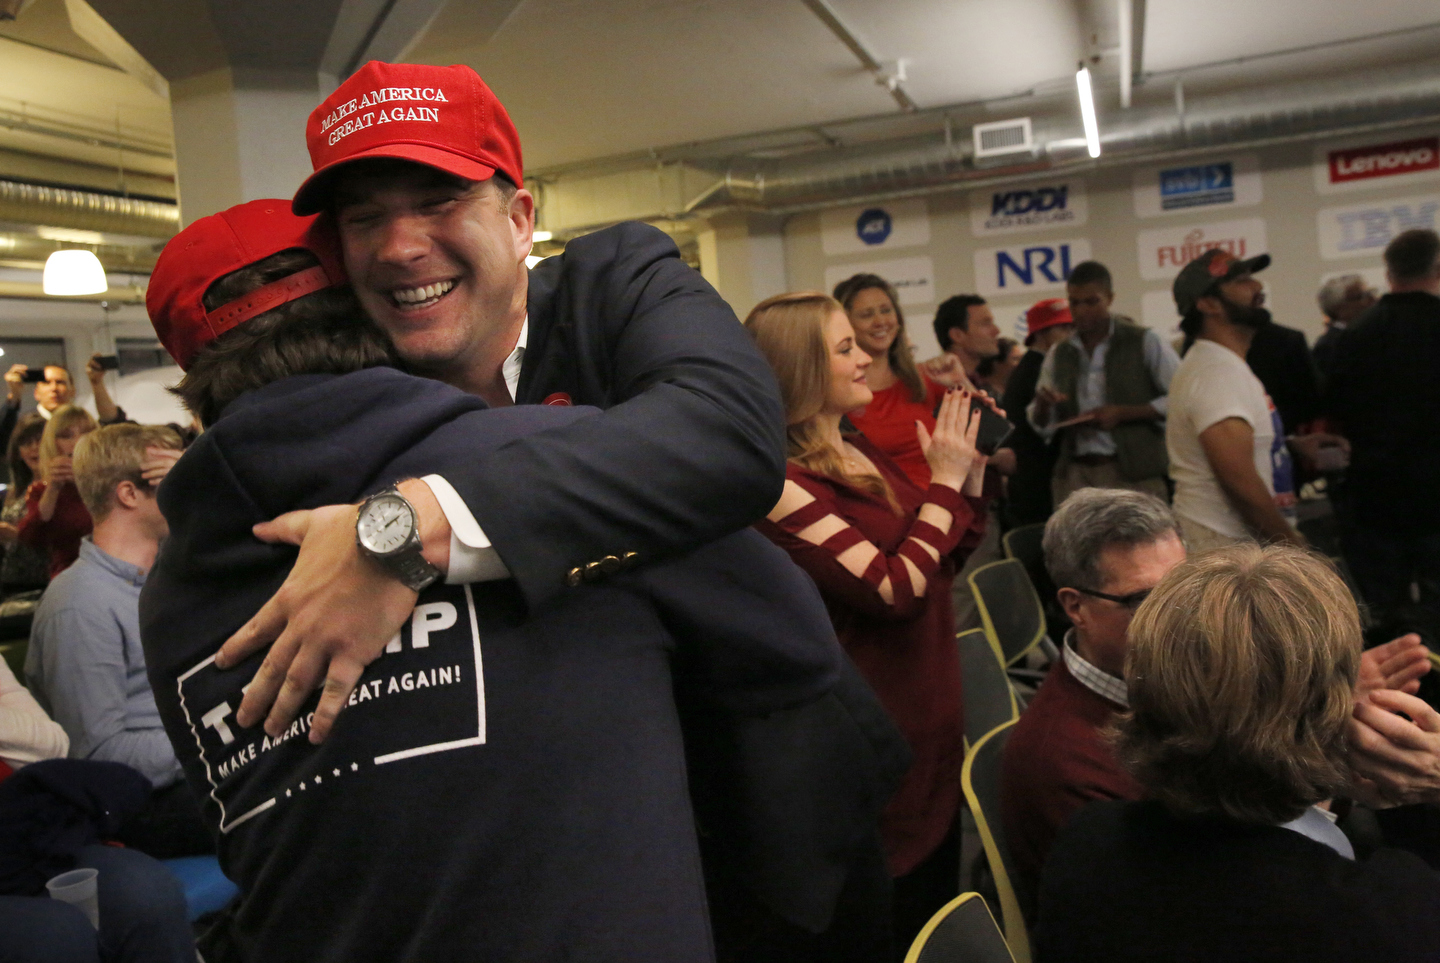 James Wall, left, and Stephen White celebrate as they watch the returns for their candidate during a watch party for Republican Presidential Candidate Donald J. Trump Nov. 8, 2016 in San Francisco, Calif.